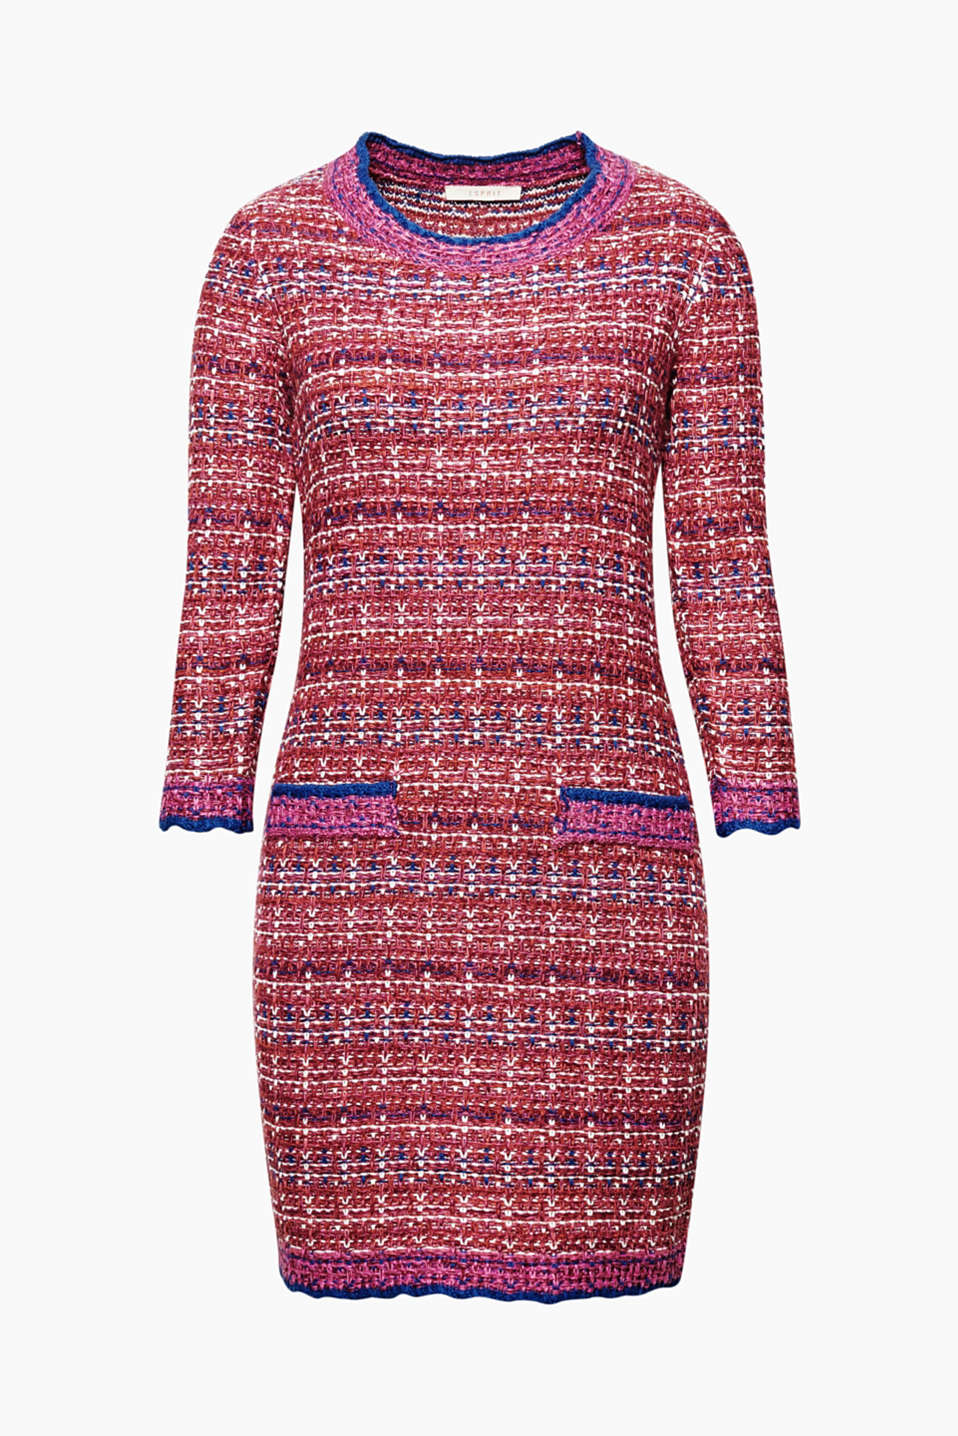 A French flair and tweed-like texture make this knitted dress with three-quarter length sleeves so stylish!